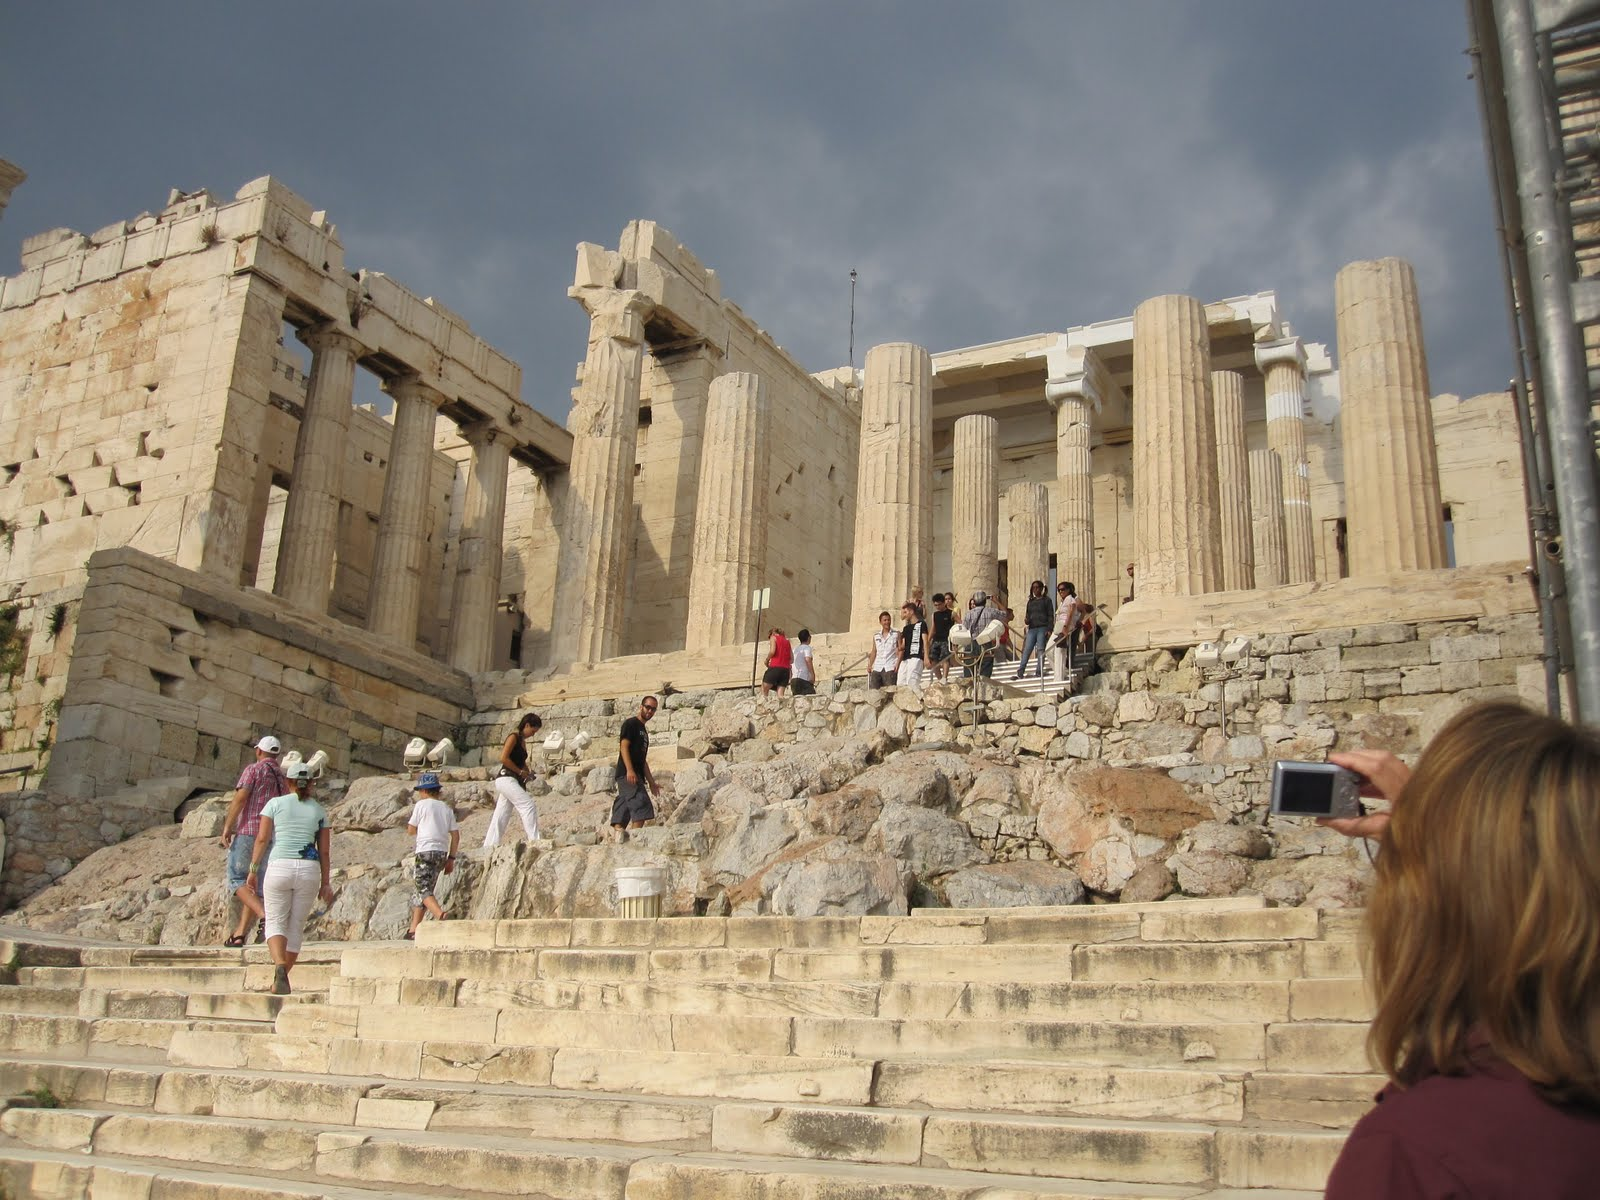 Cannundrums: The Acropolis